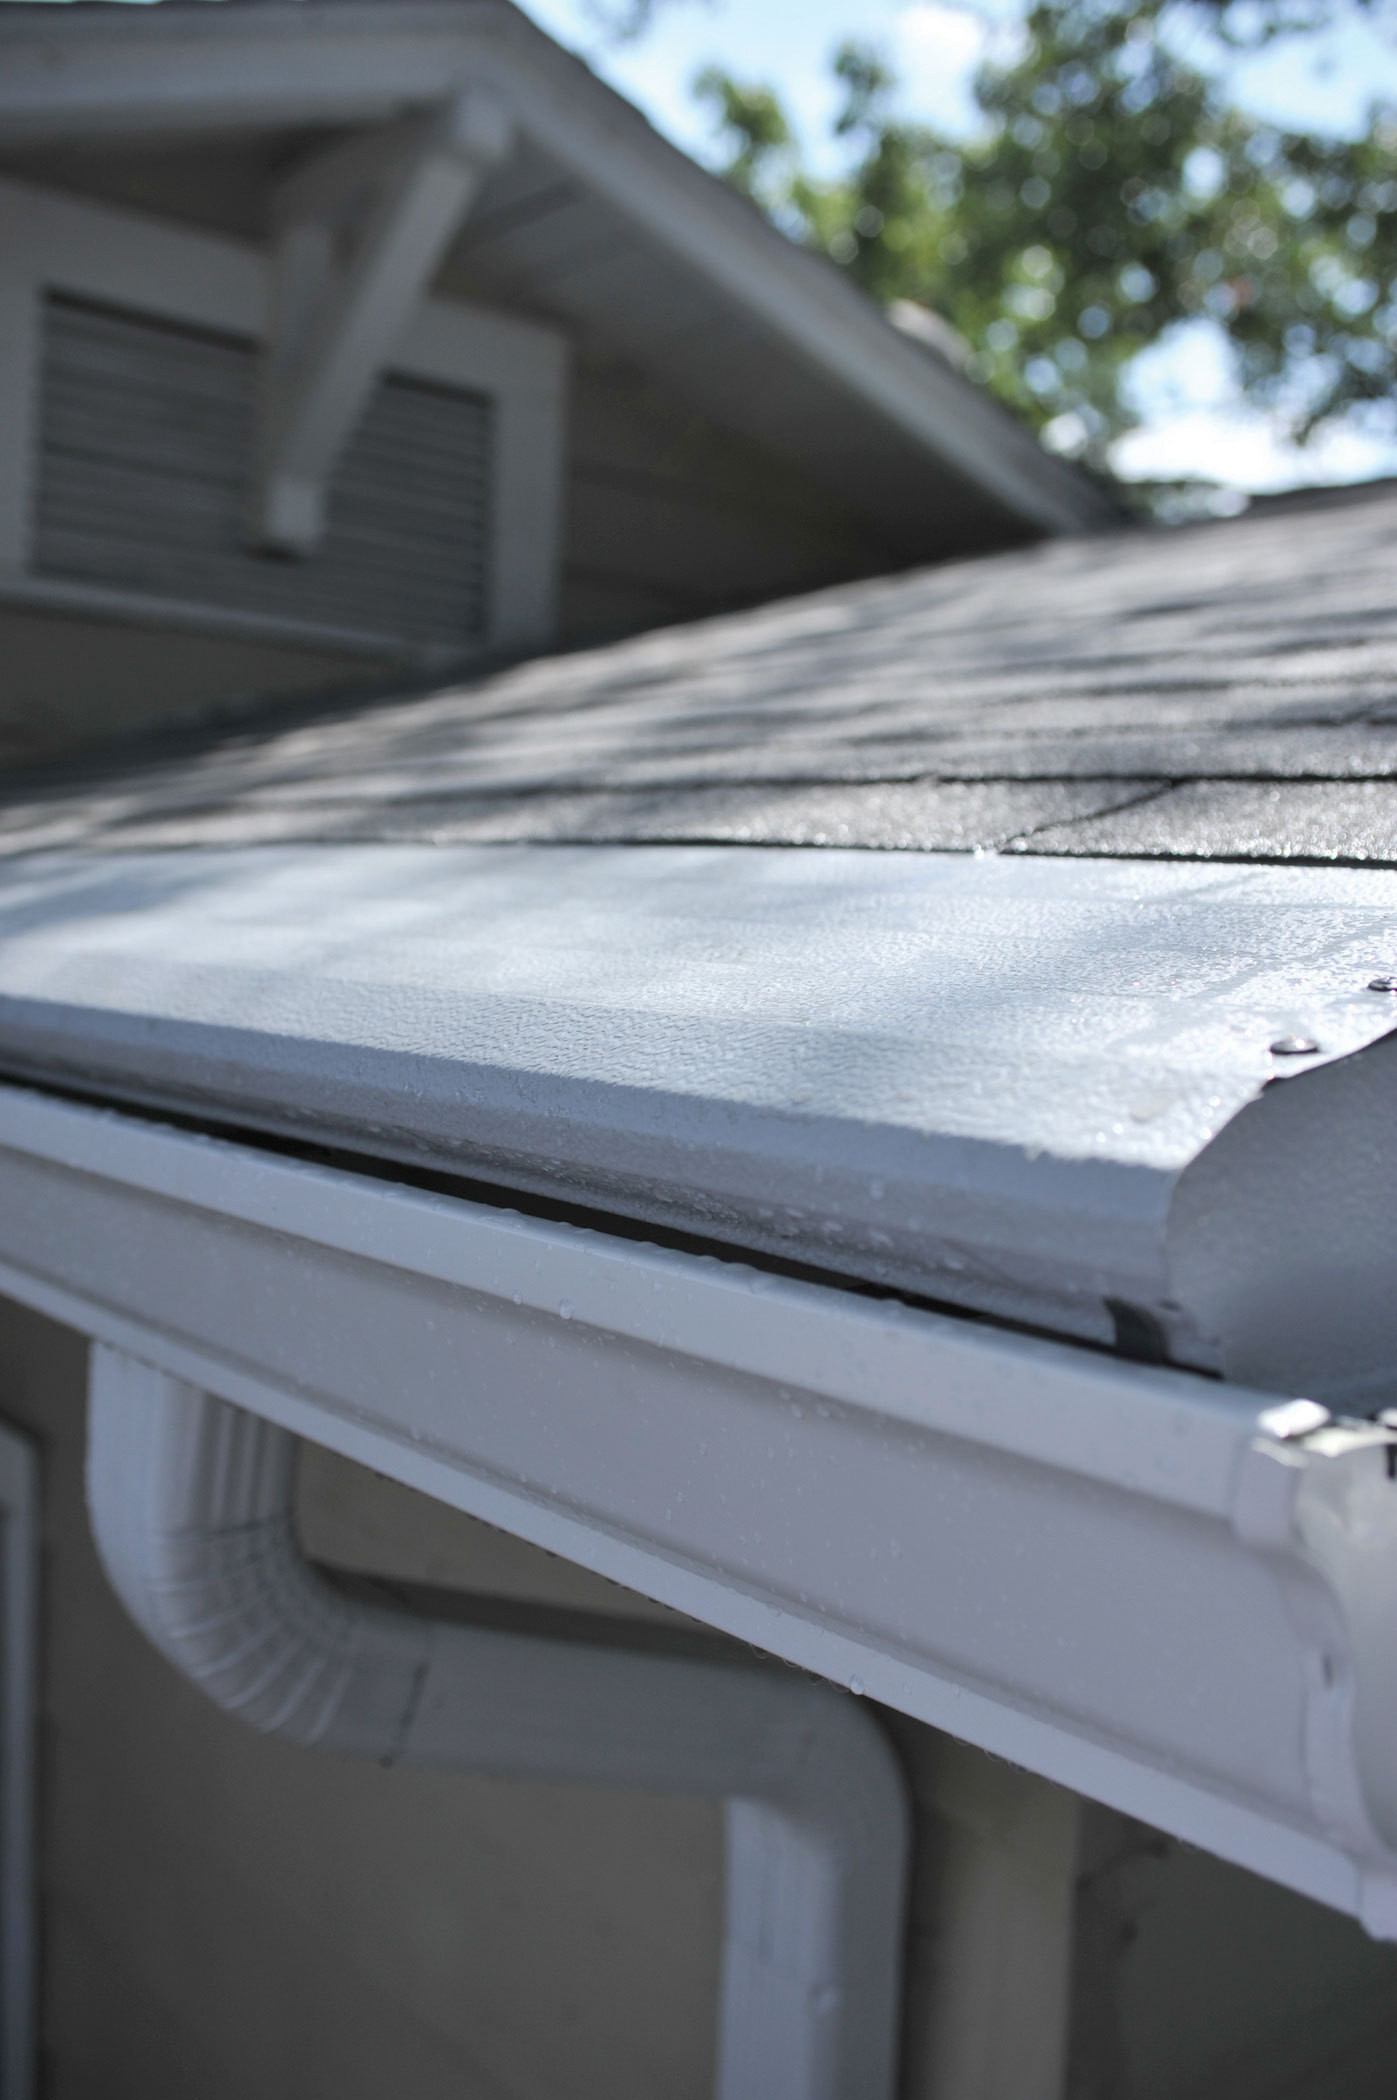 7 reasons why your home needs gutter covers moonworks 7 reasons why your home needs gutter covers solutioingenieria Choice Image